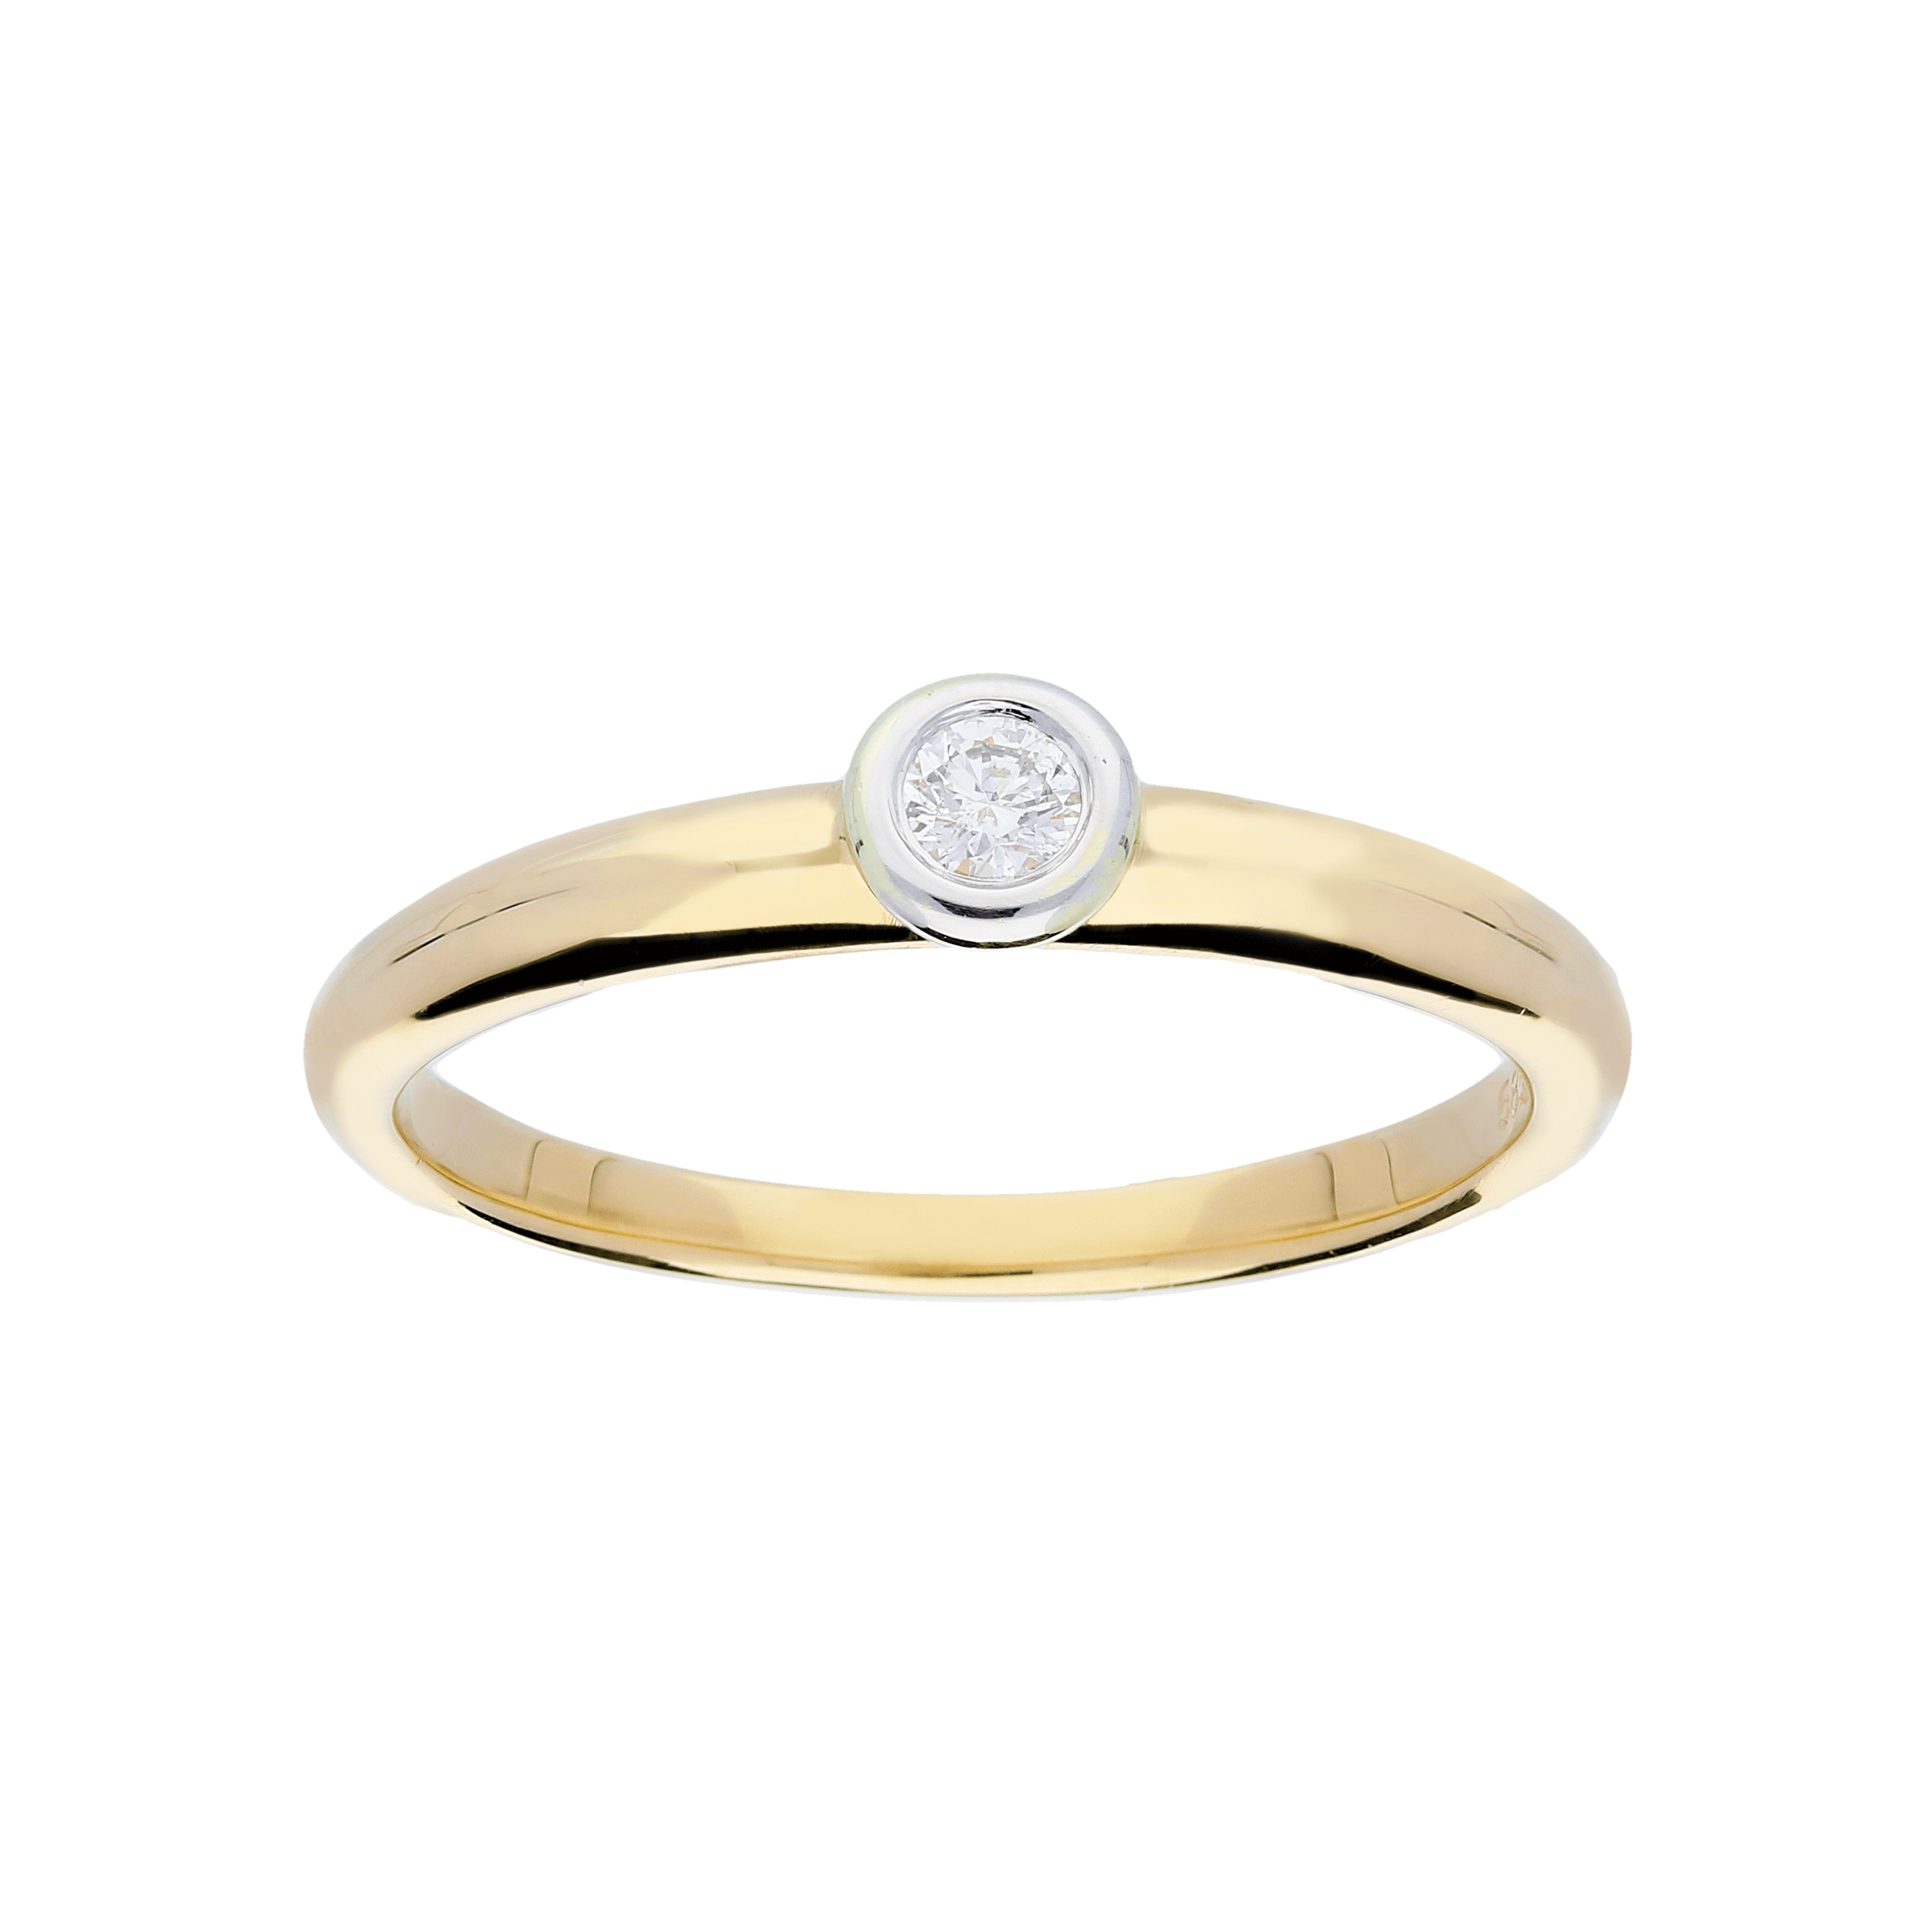 Glow Gouden Ring Bicolor Mat Glanzend Diamant 1 0.07ct G si 214.5209.54